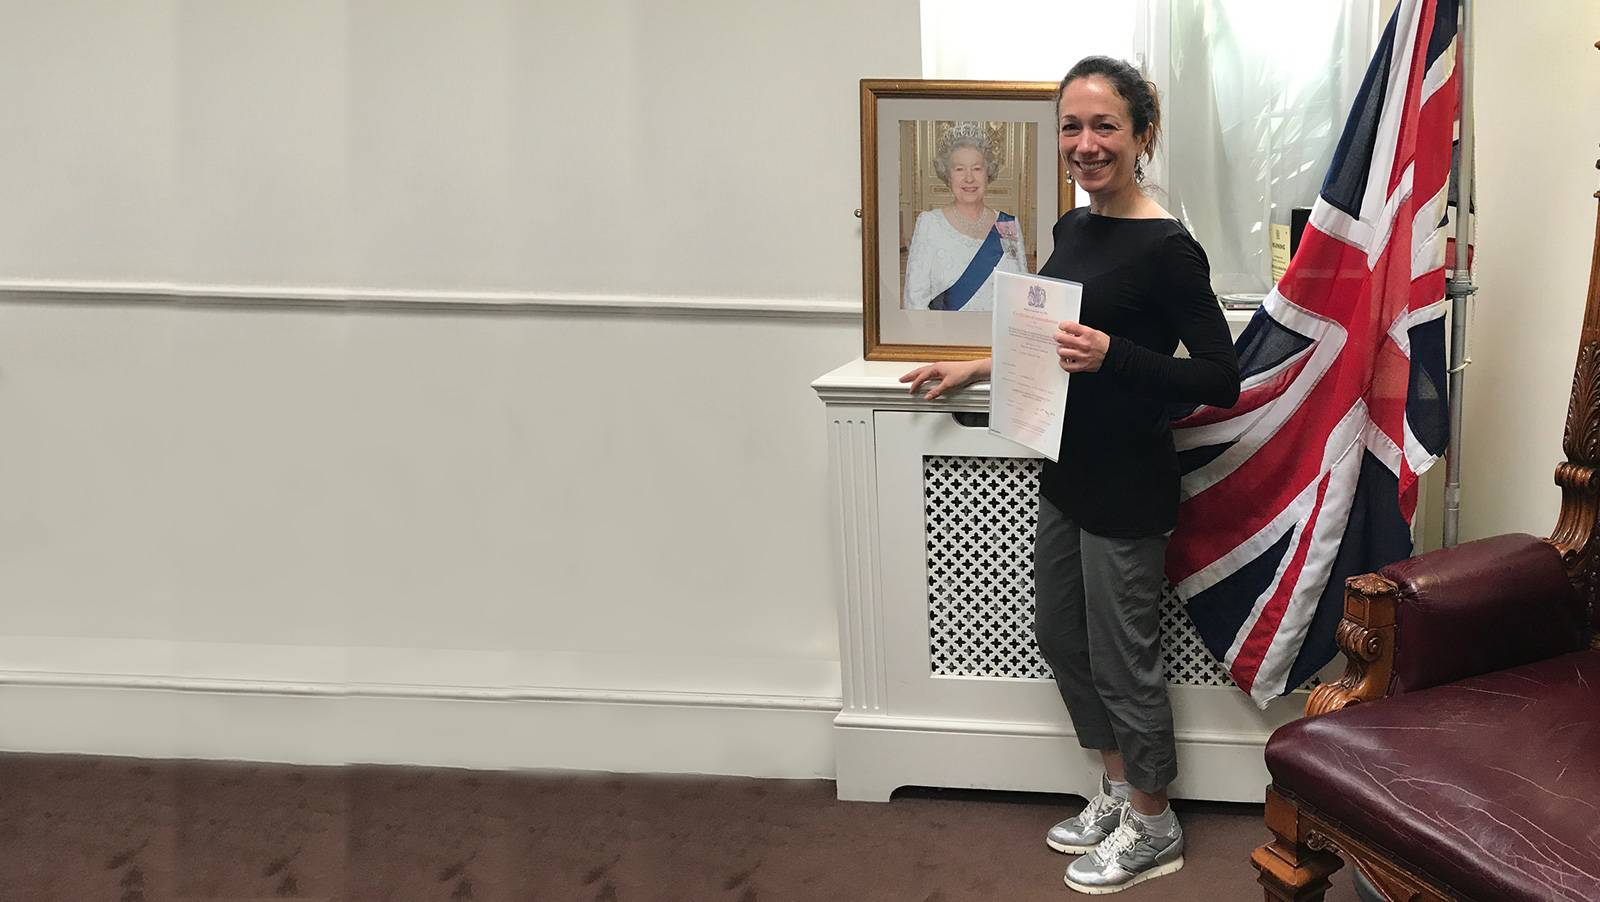 Becky's Affiliated: CalvinAyre.com's role in my journey to British citizenship